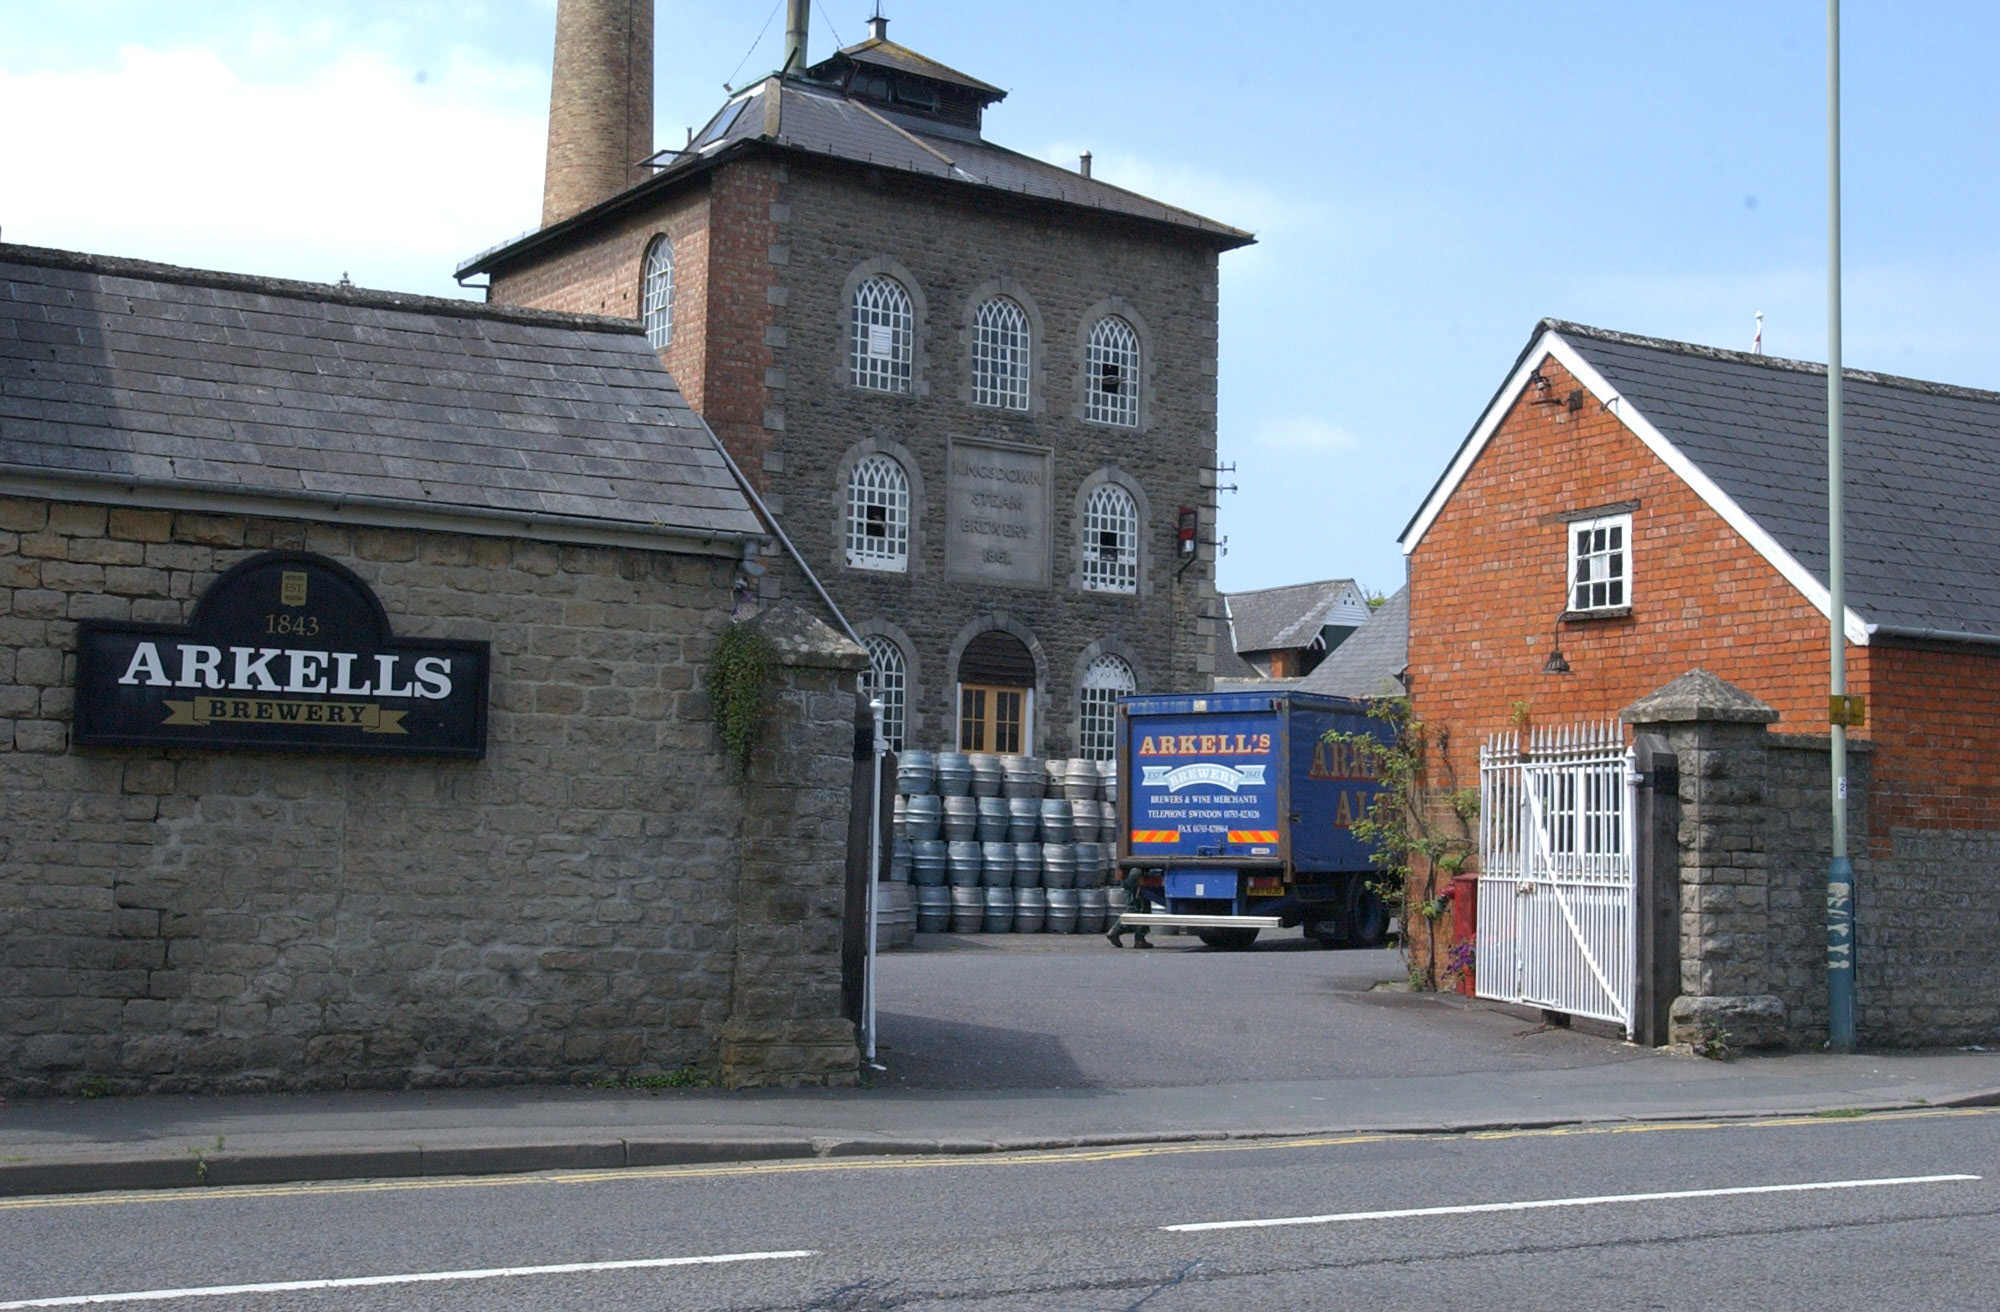 arkells-brewery-swindon.jpg